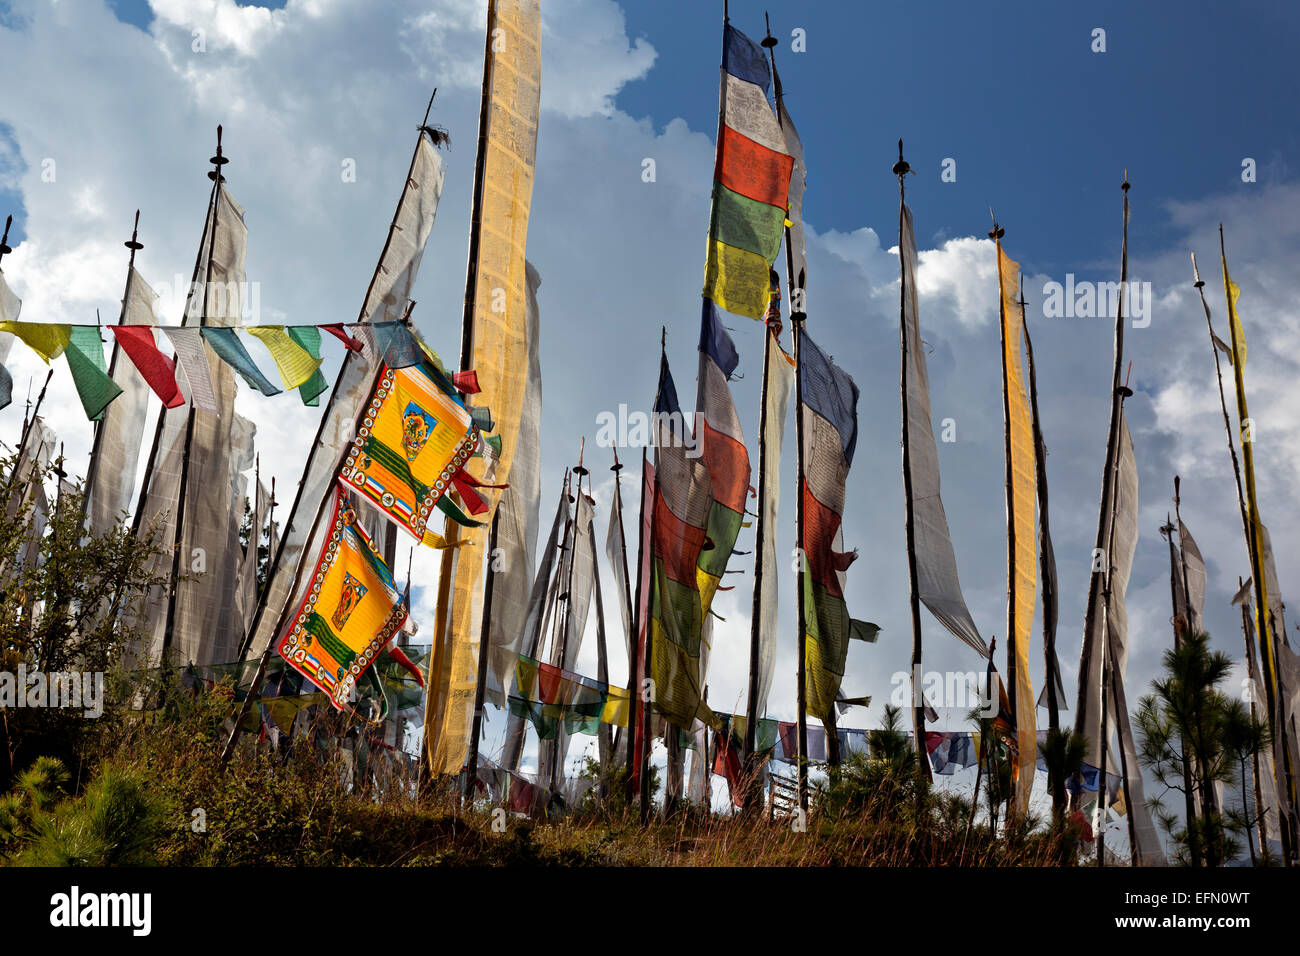 BU00064-00...BHUTAN - Prayer flags from the Sangaygang area above the telecommunications tower. - Stock Image